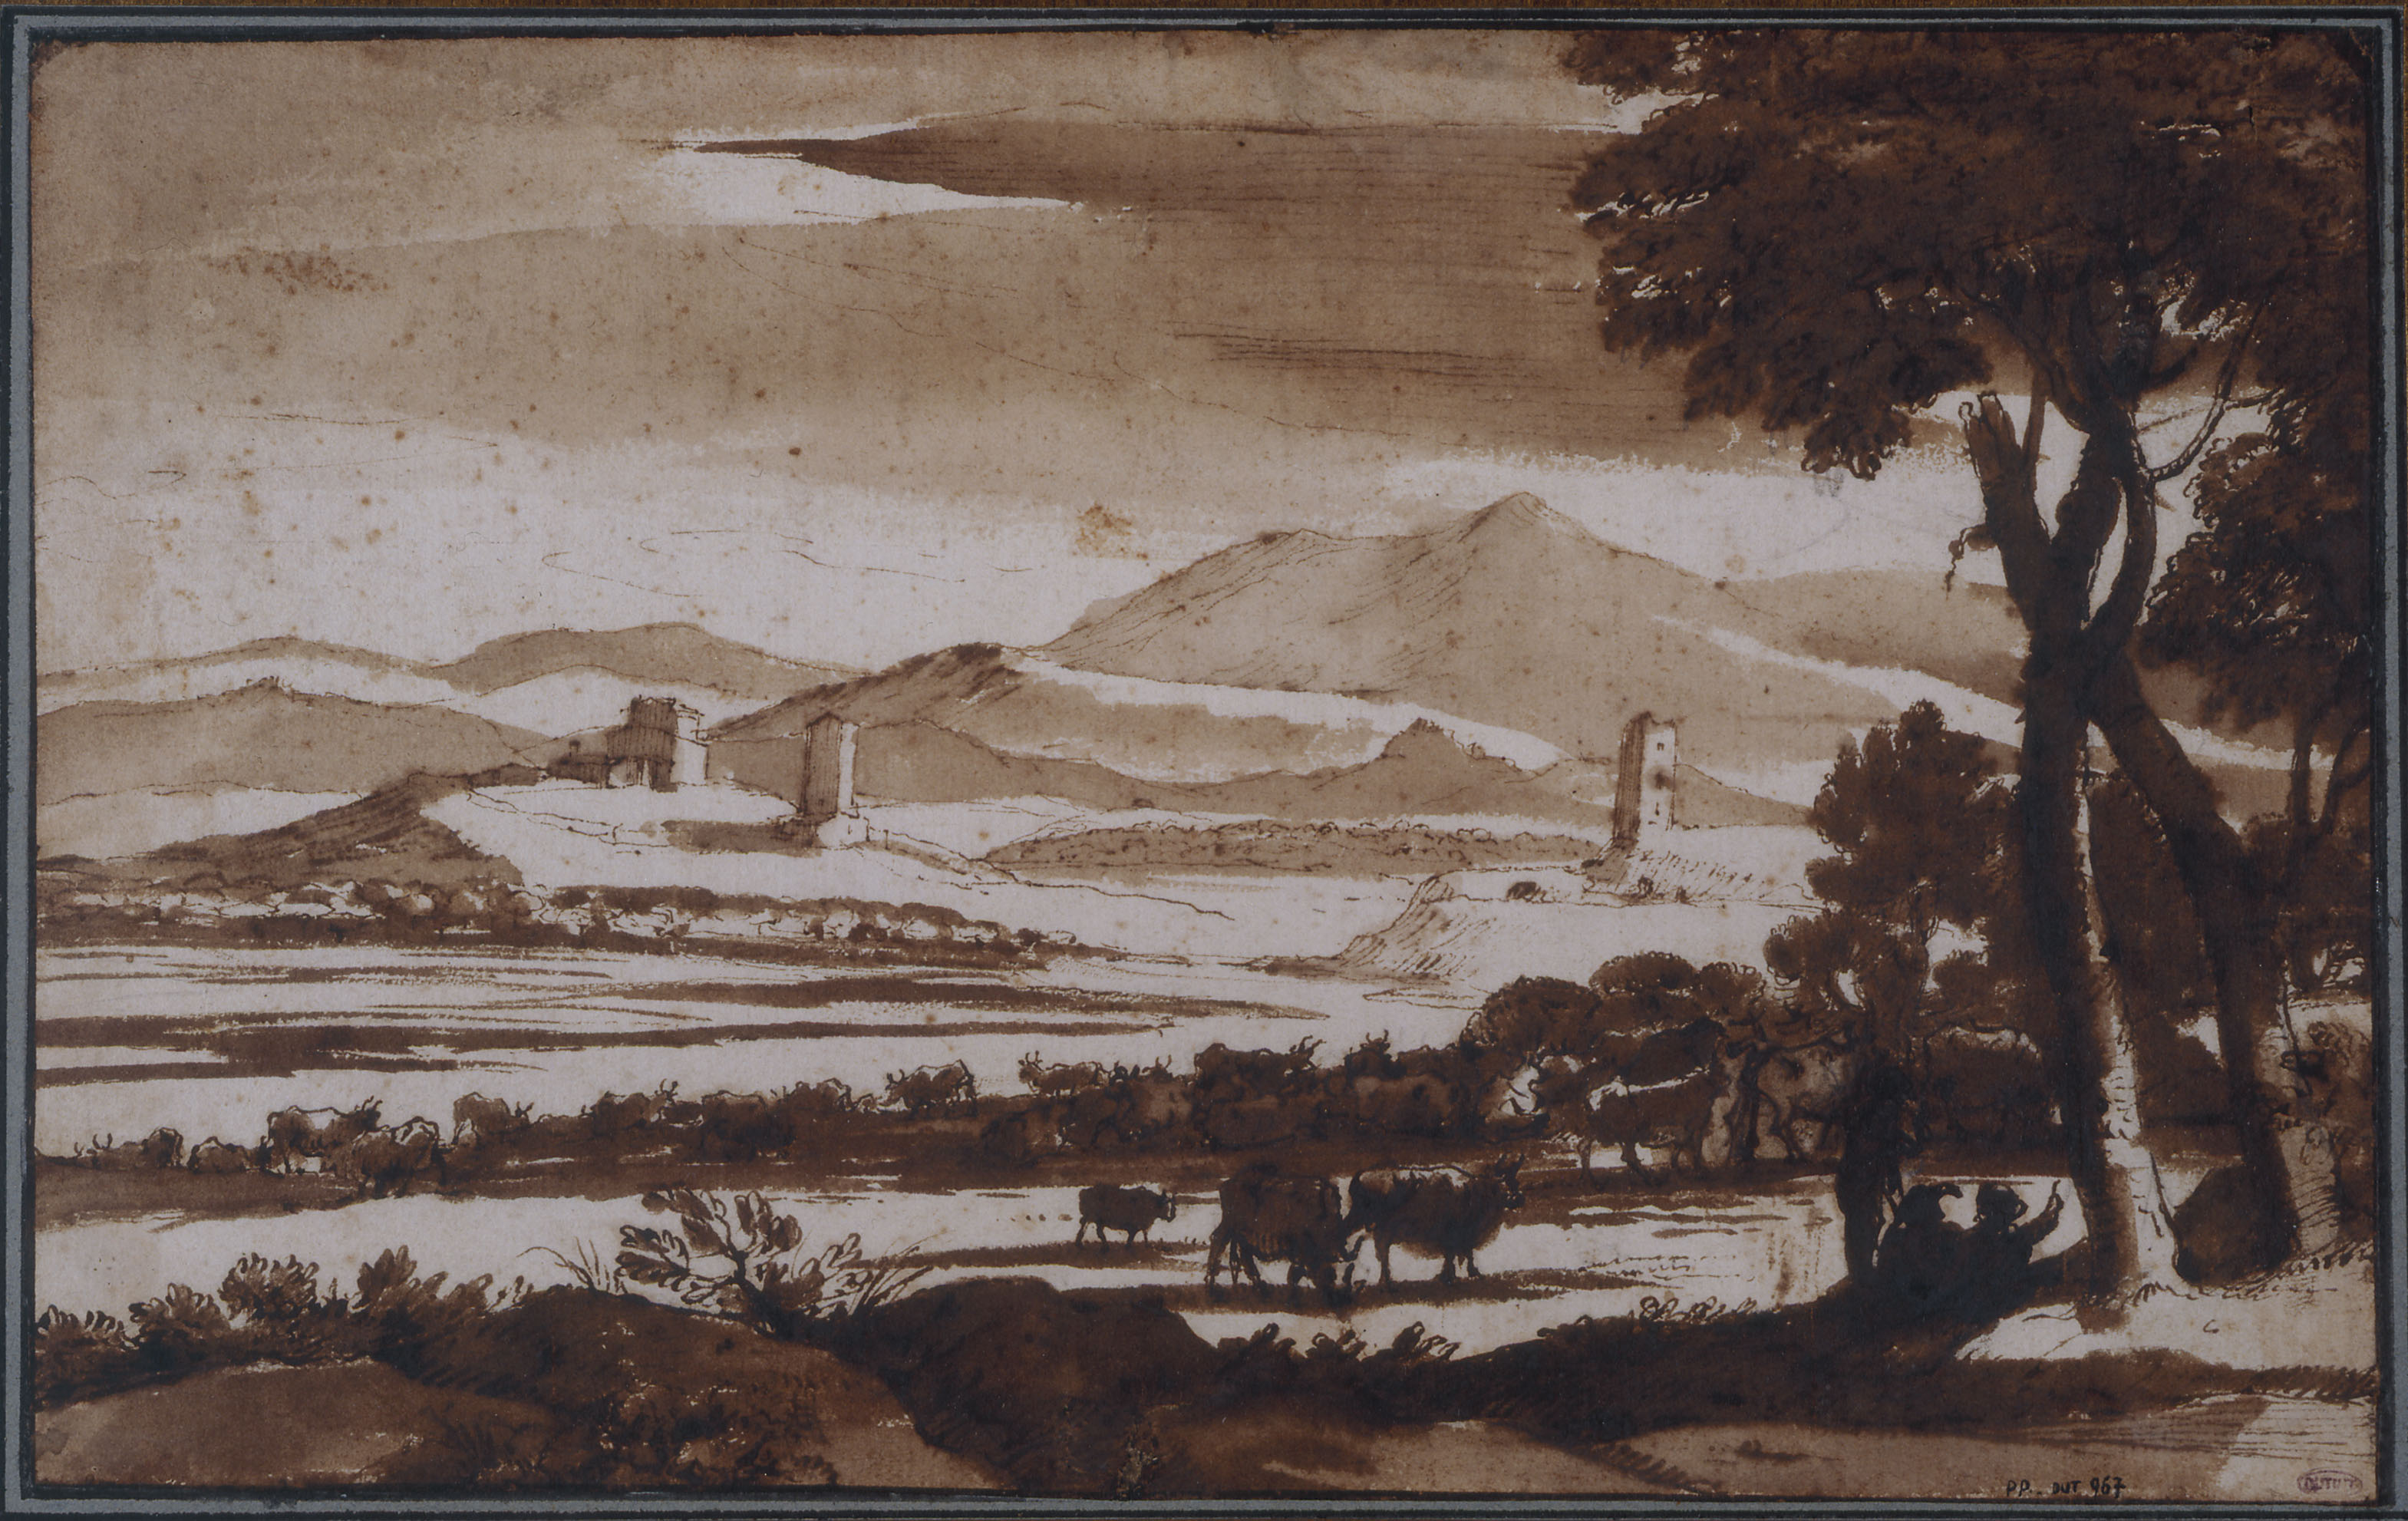 Le Lorrain - Landscape of the Roman Campagna seen from the Prato Longo